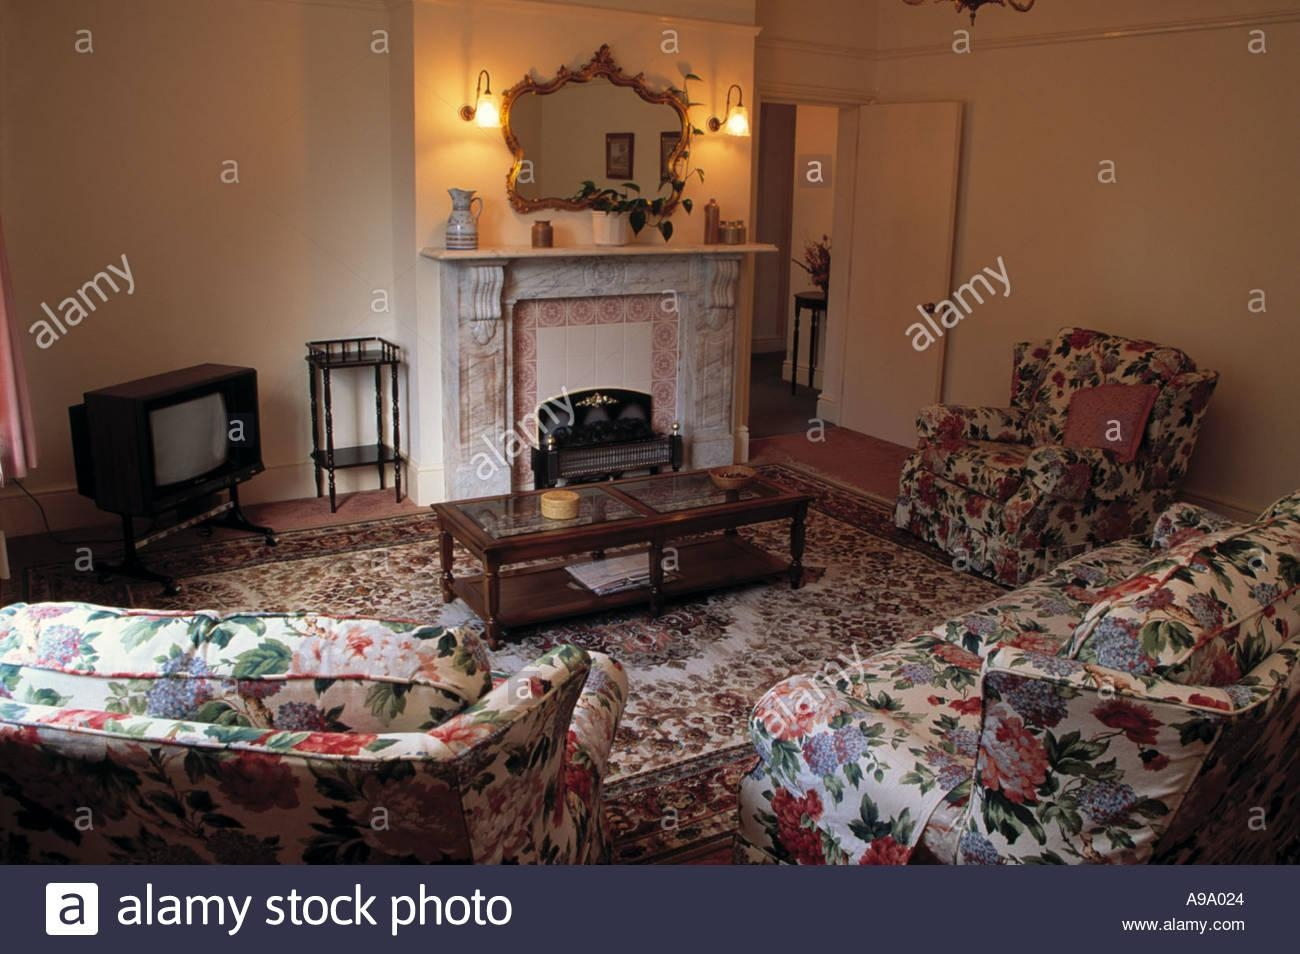 Chintz Sofa And Armchairs In Dated Living Room With Television In Intended For Chintz Floral Sofas (View 2 of 22)